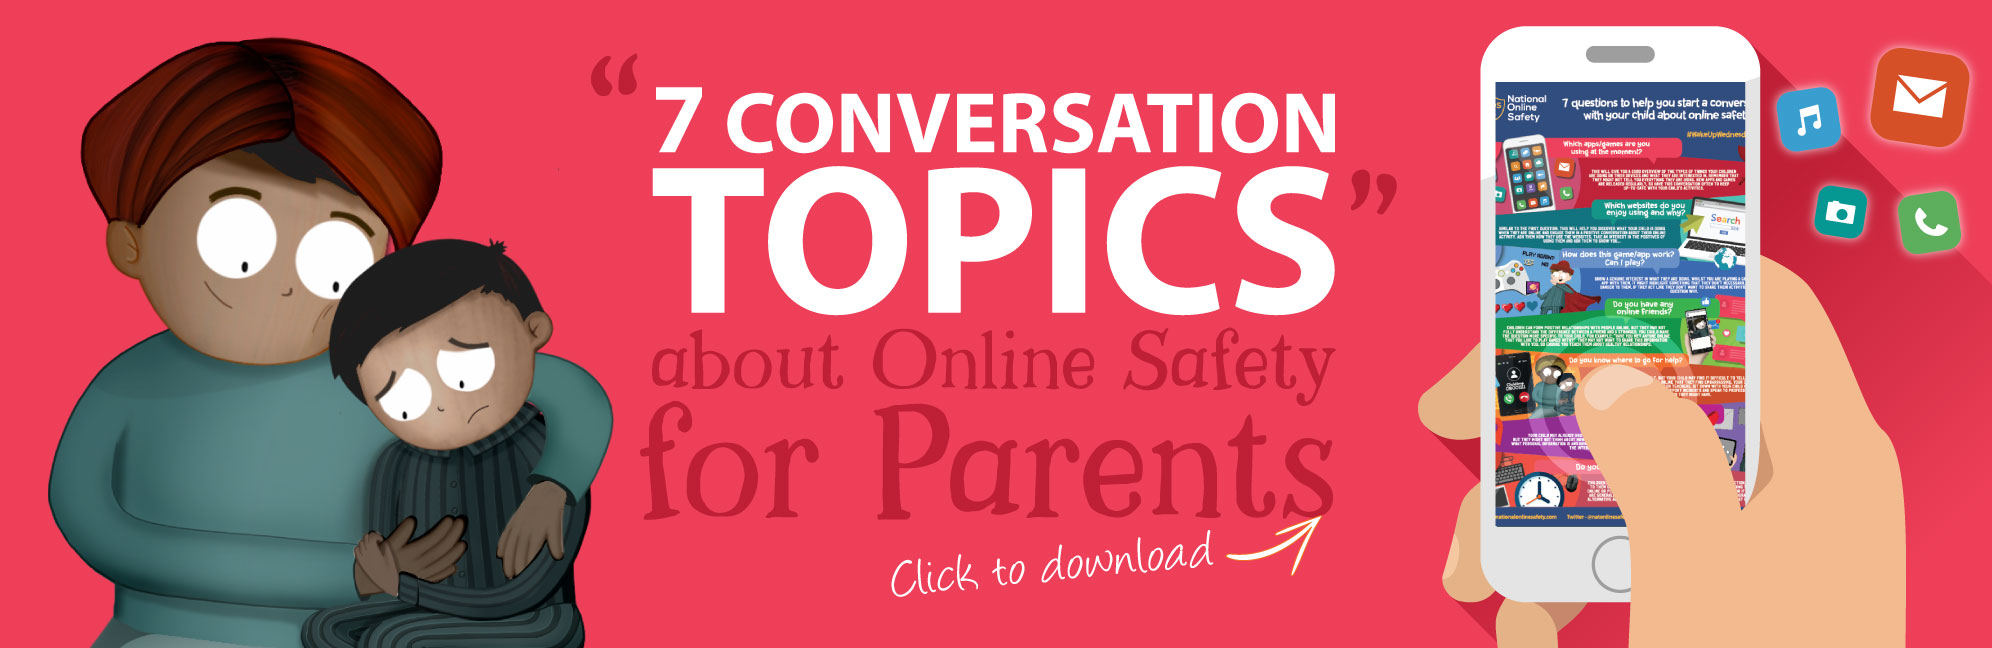 7-Conversation-Topics-Online-Safety-Parents-Guide-Web-Image-121118-V1